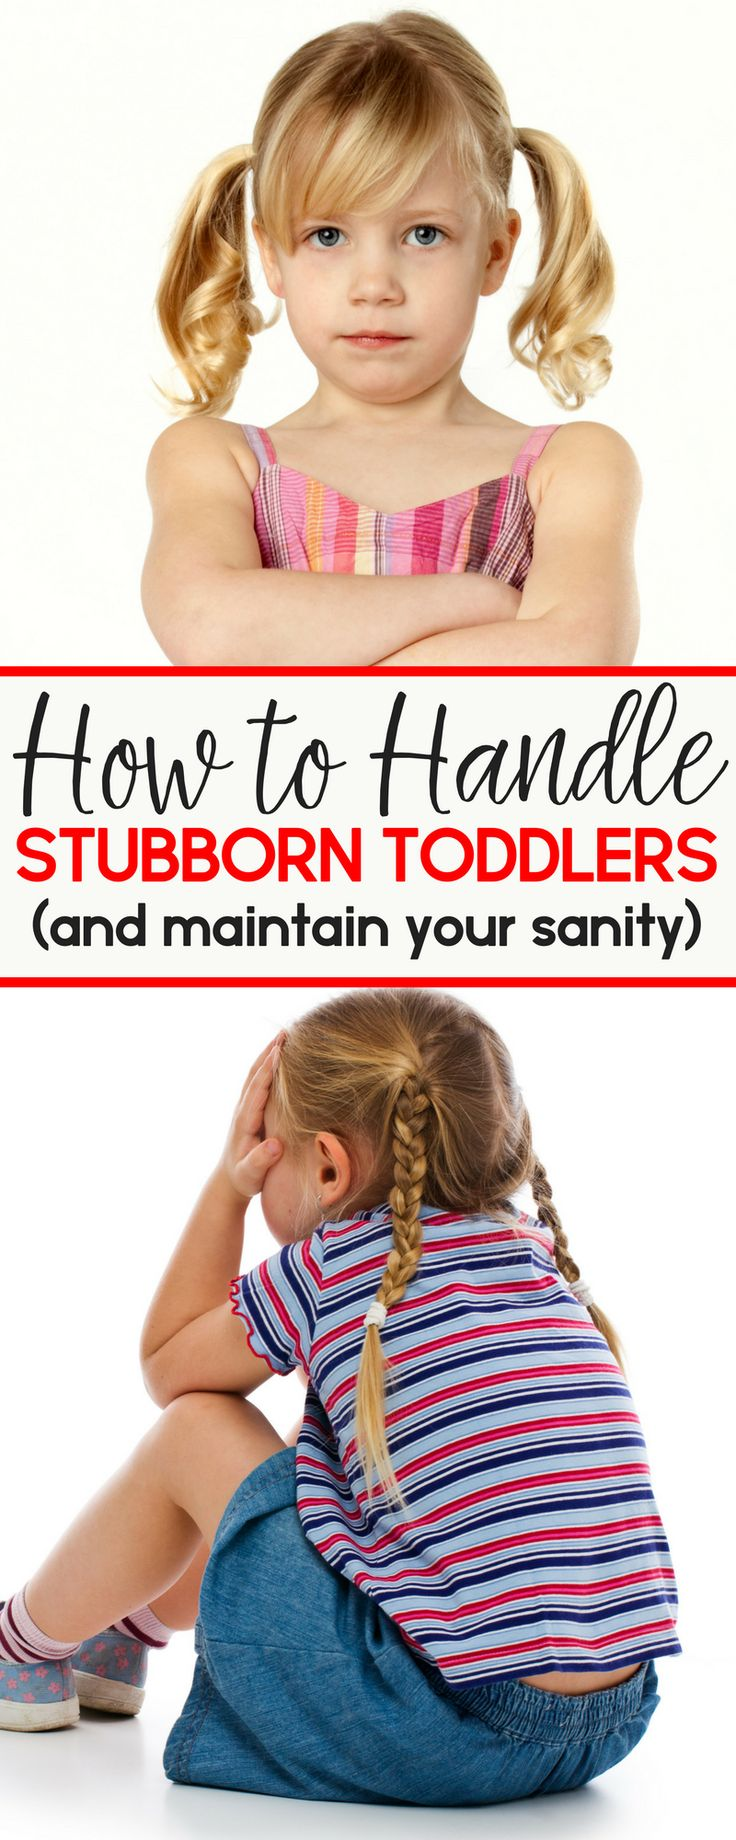 Stubborn + toddler seems to go hand in hand am I right? Here's how to handle stubborn toddlers AND keep your sanity!   parenting toddlers   parenting   stubborn toddlers   terrible twos   managing the terrible twos   terrible threes   managing the terrible threes